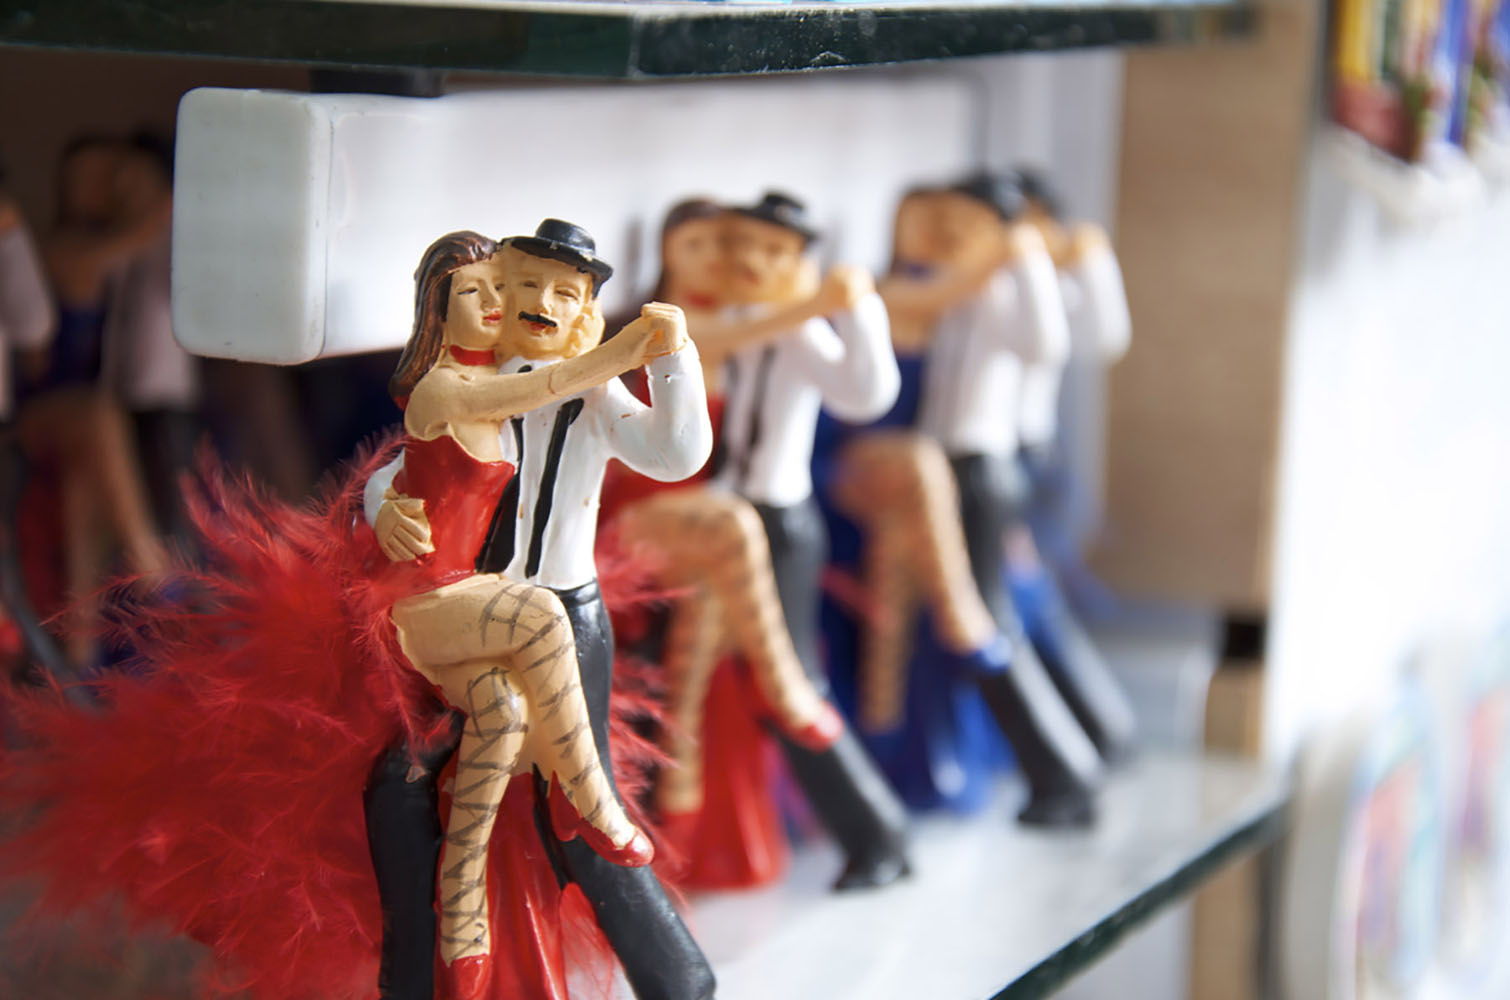 Figurines depicting salsa dancers in Buenos Aires